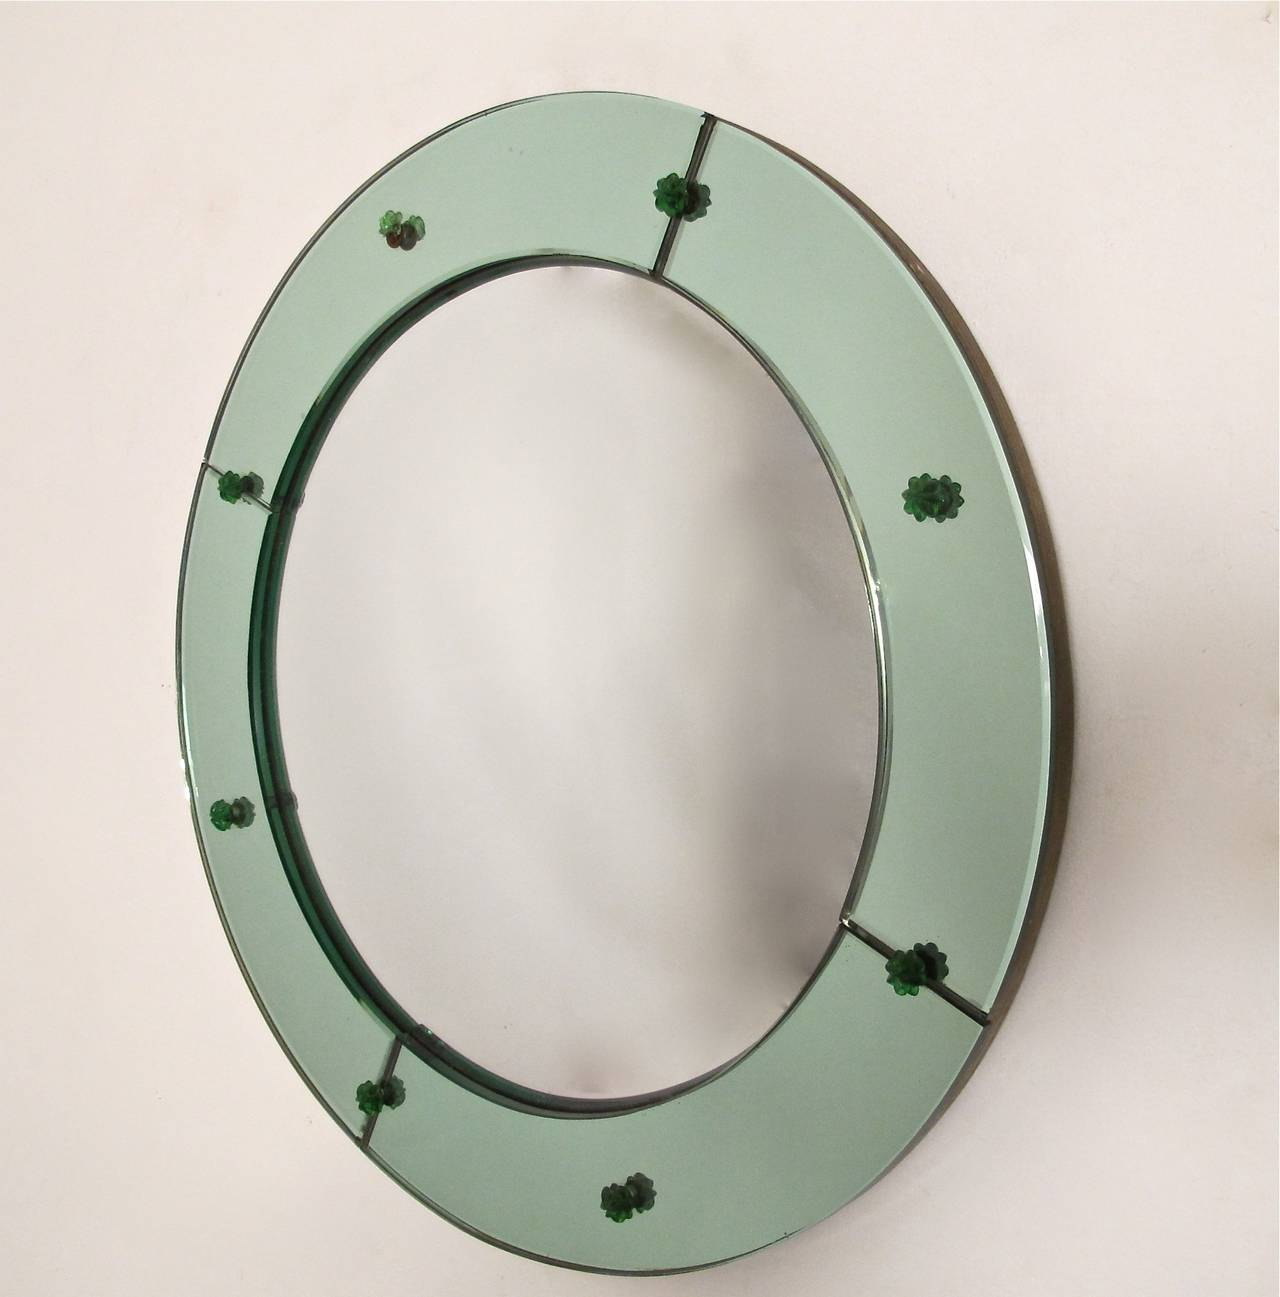 Art deco convex mirror for sale at 1stdibs for Convex mirror for home